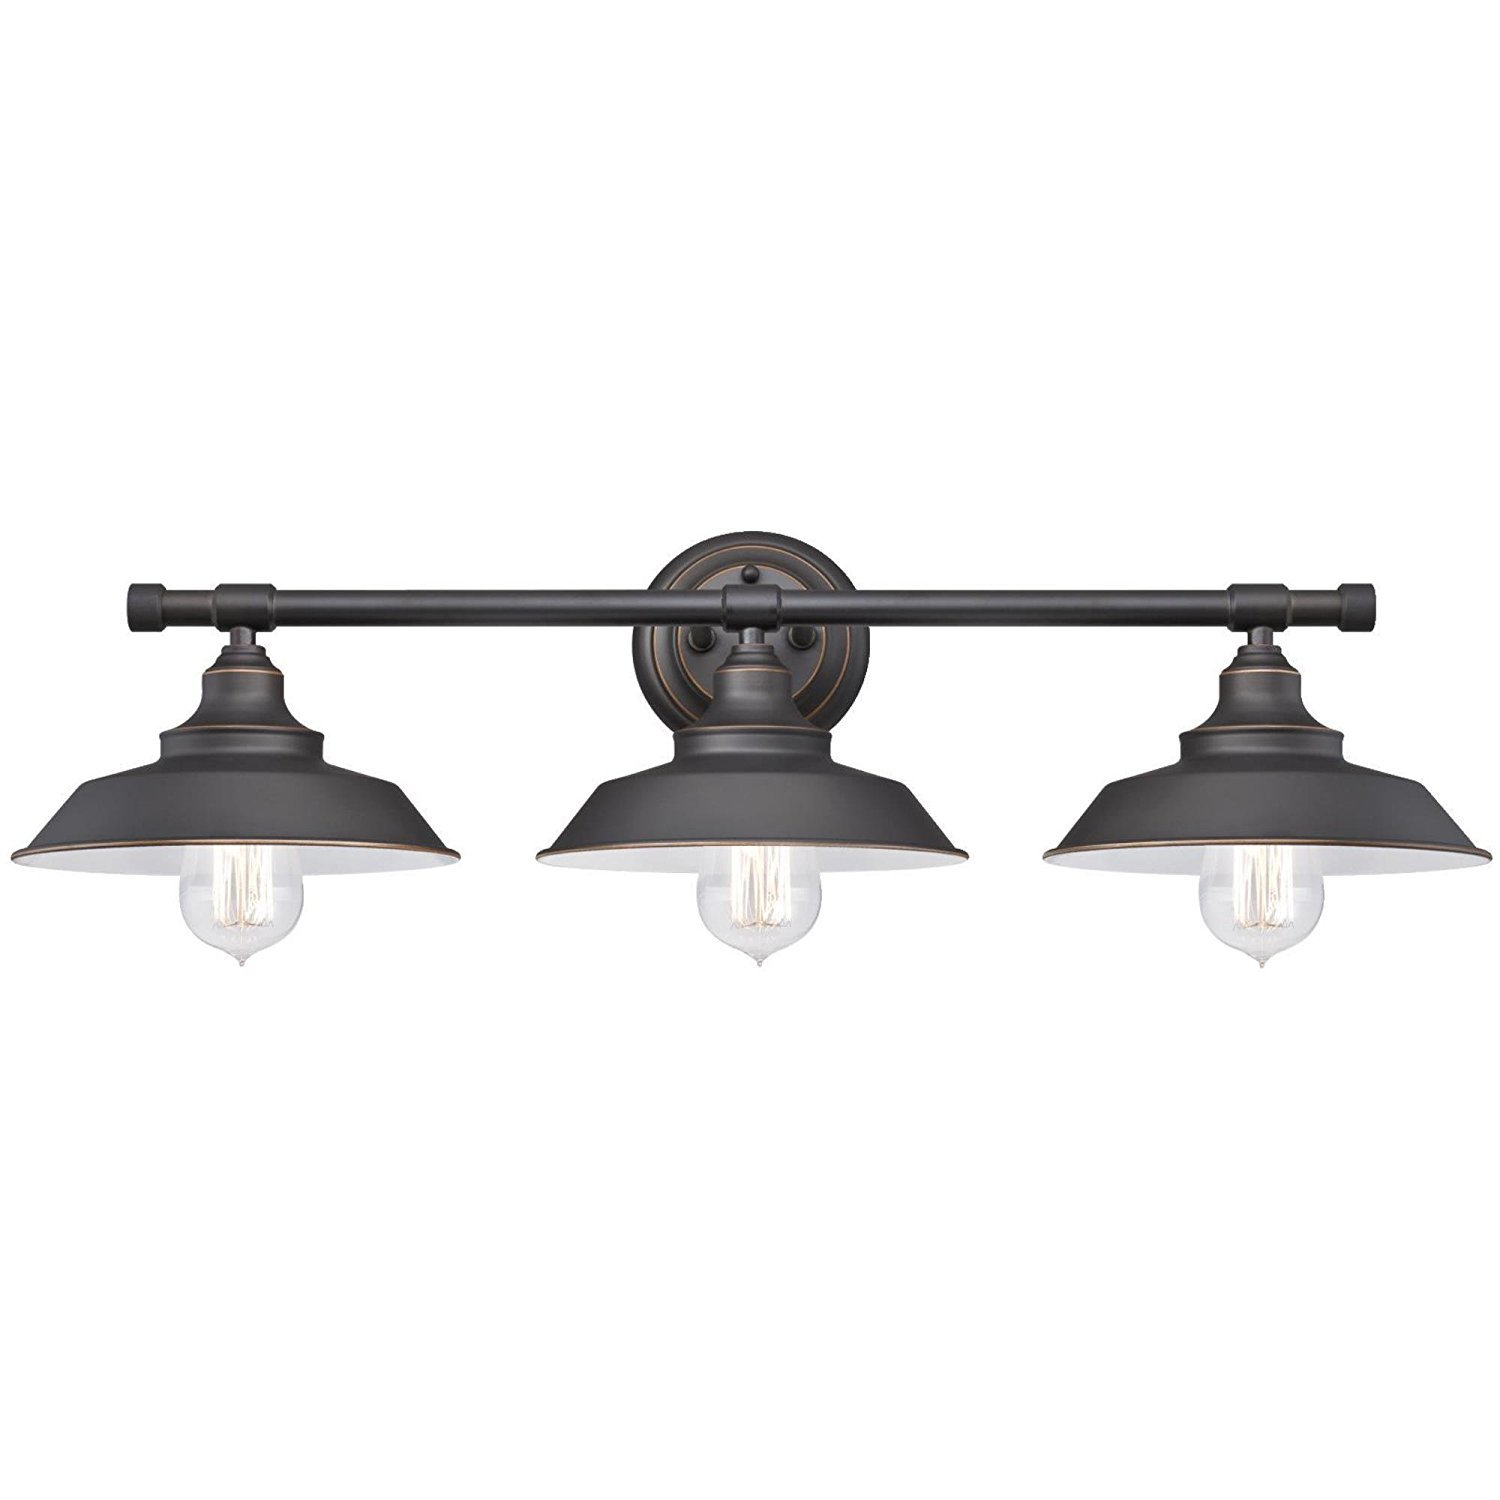 Dysmio - Three-Light Indoor Wall Fixture, Oil Rubbed Bronze Finish with Highlights and Metal Shades by Nuvo